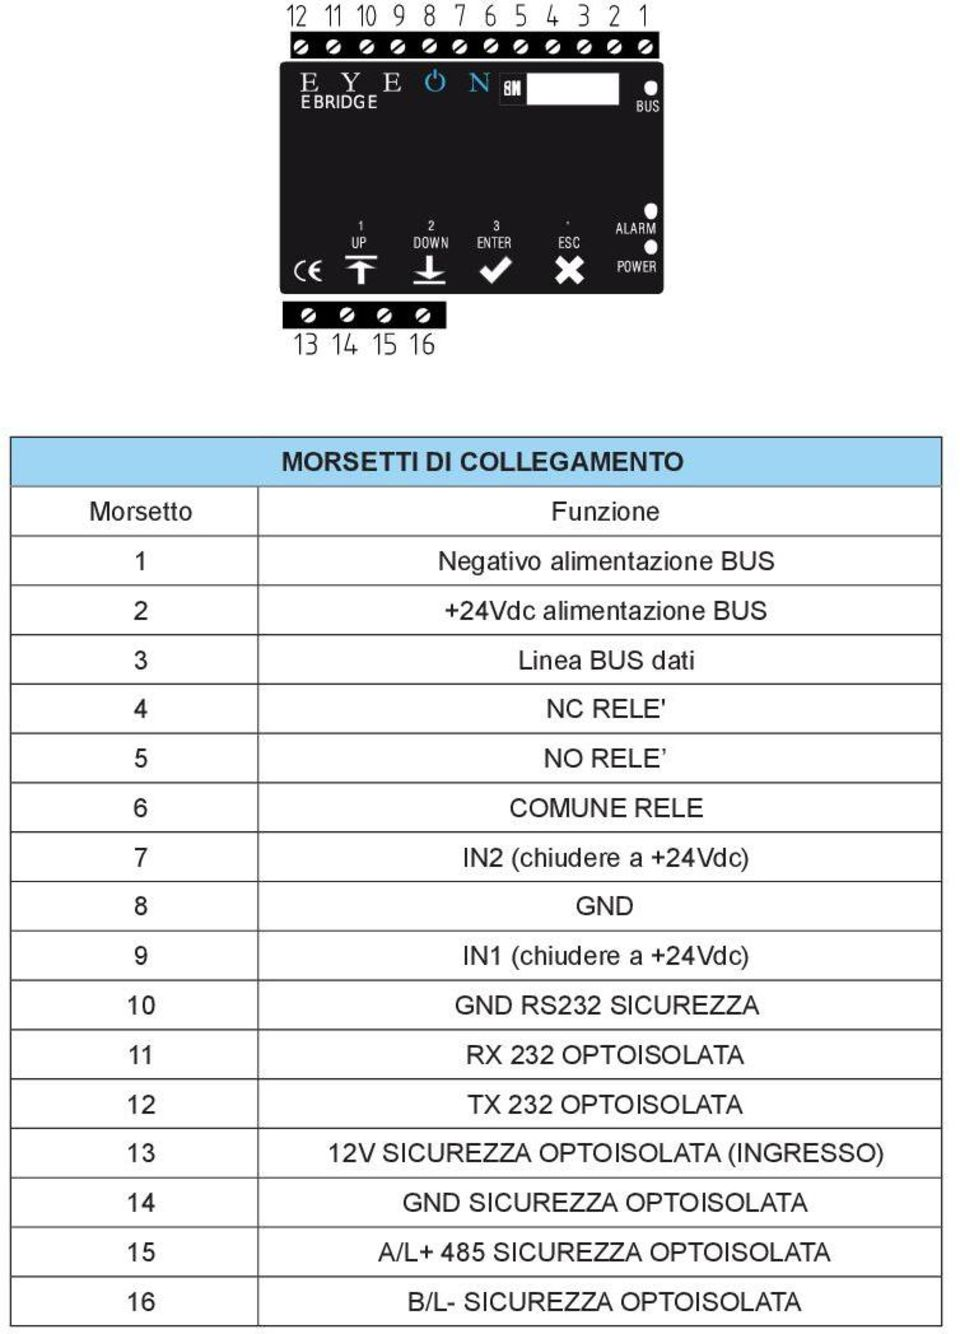 IN1 (chiudere a +24Vdc) 10 GND RS232 SICUREZZA 11 RX 232 OPTOISOLATA 12 TX 232 OPTOISOLATA 13 12V SICUREZZA